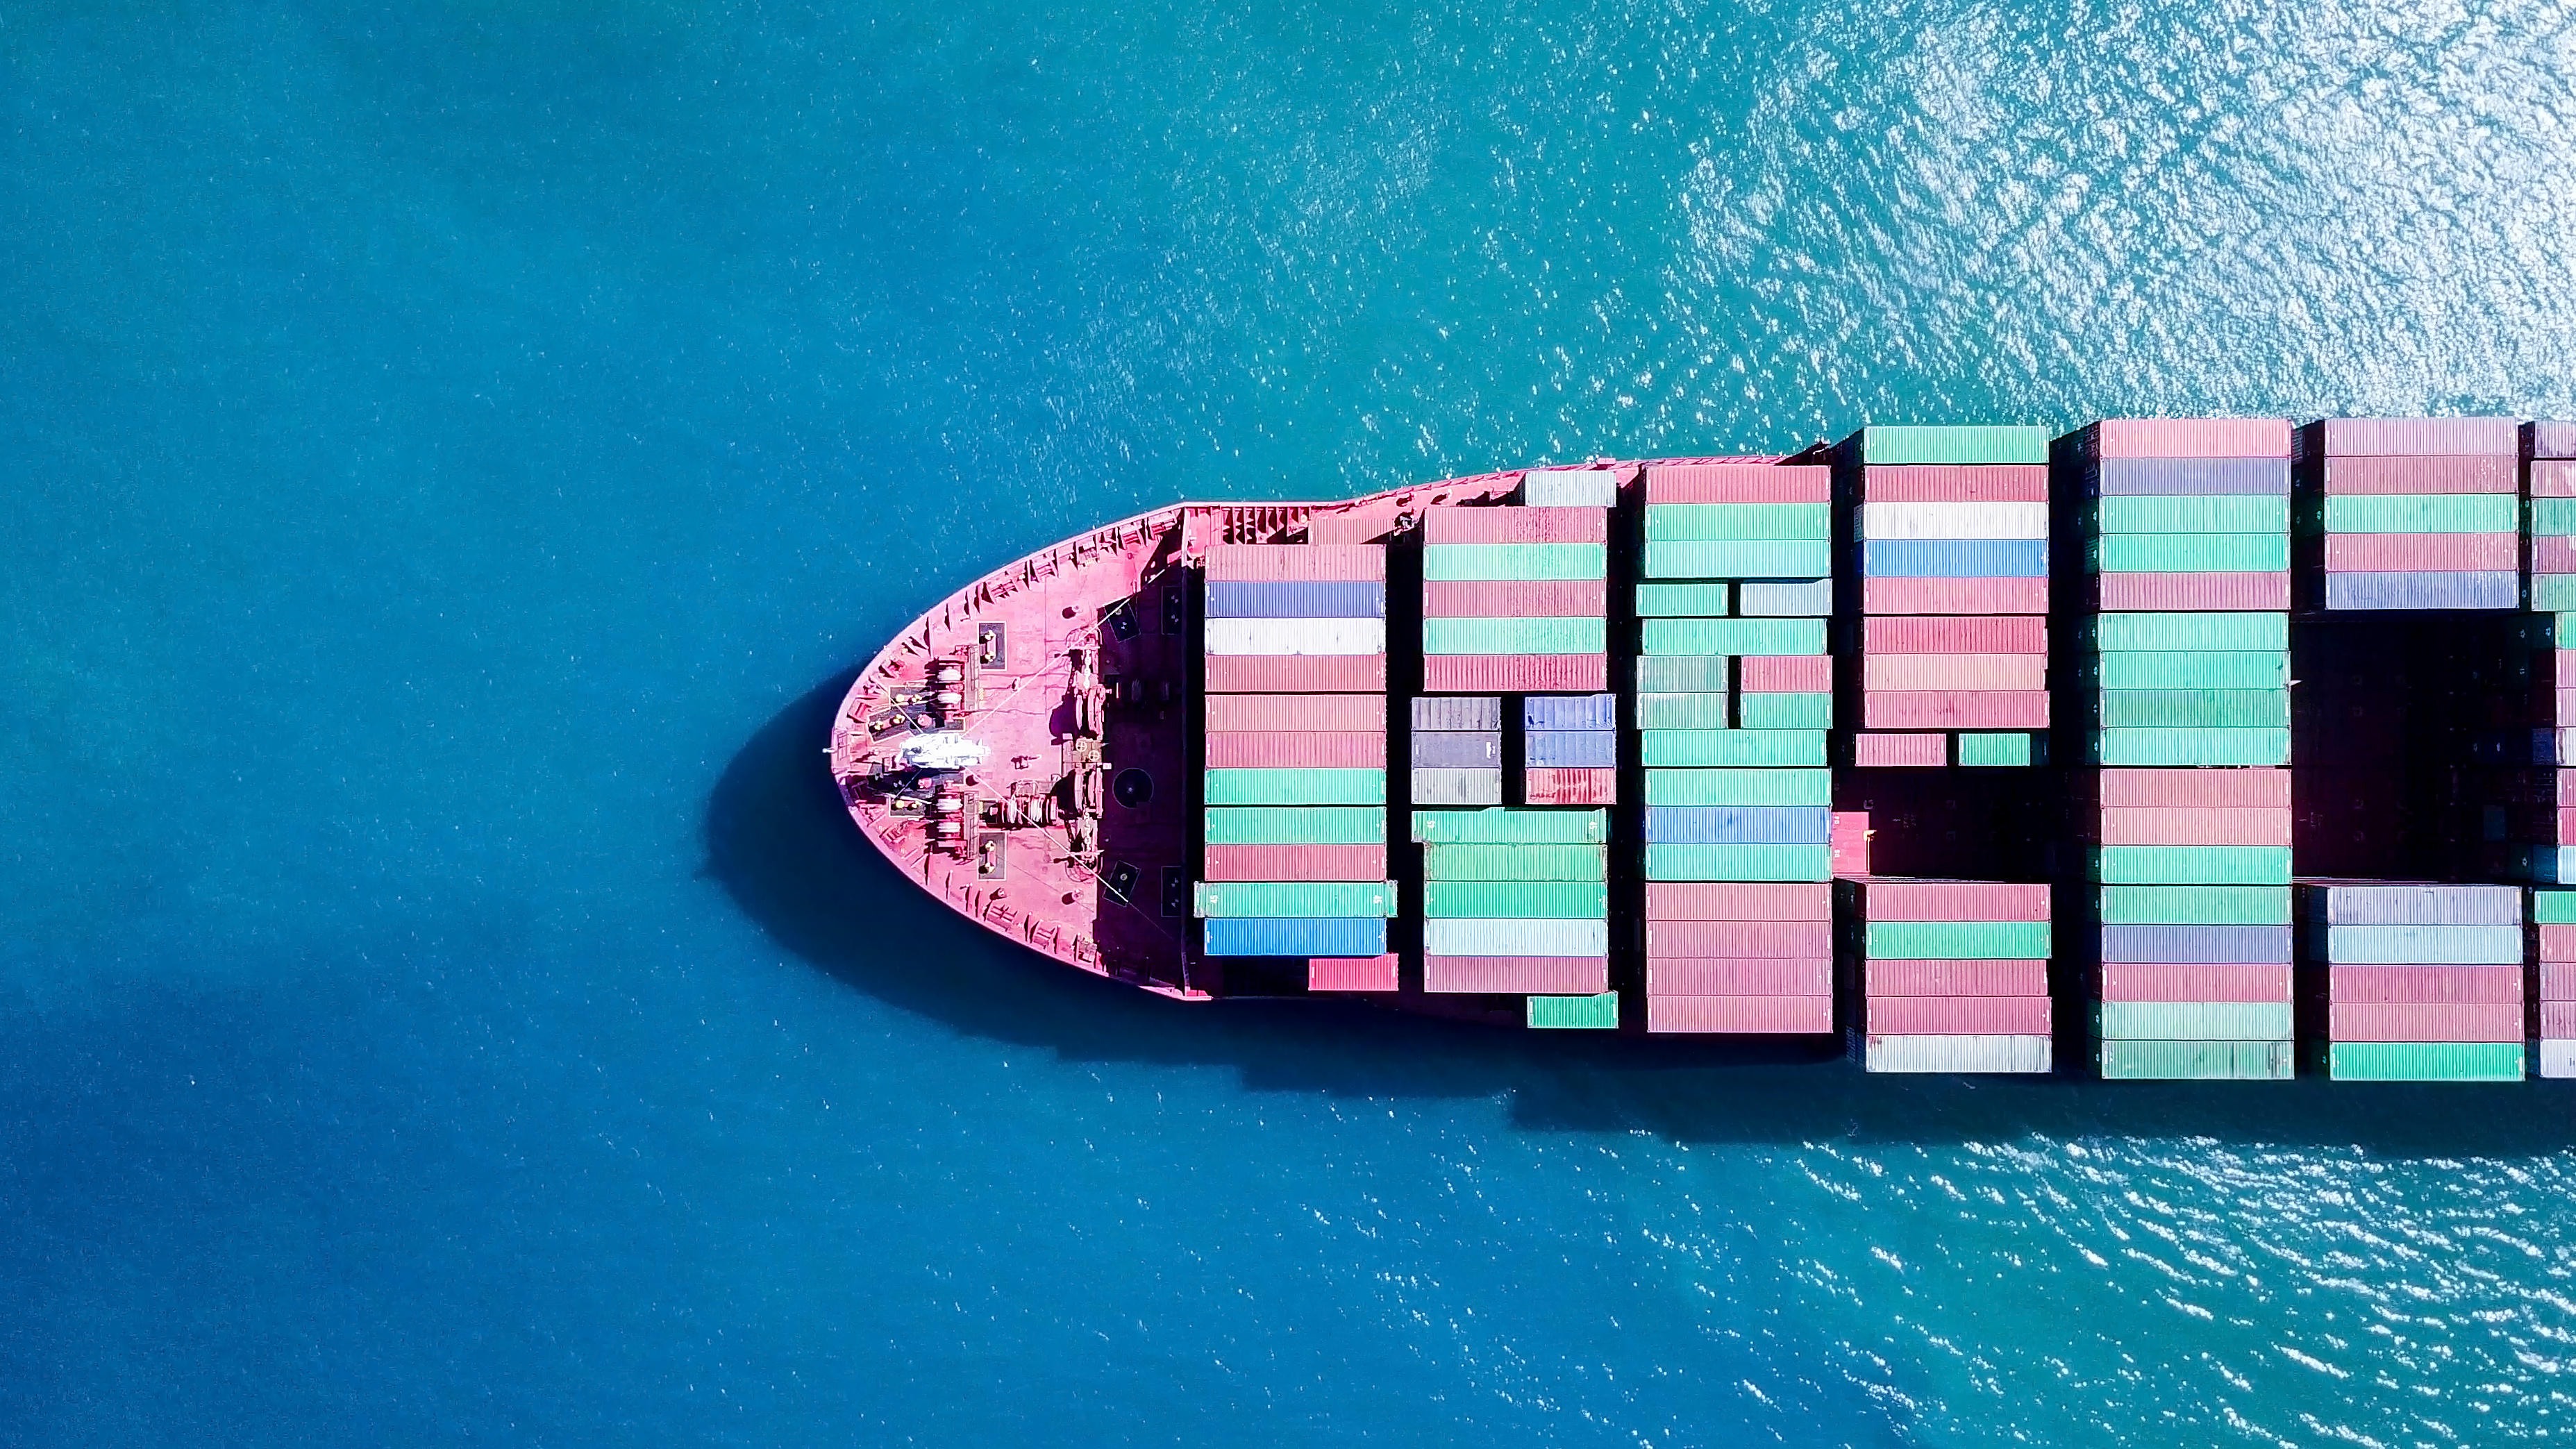 Container ship on its way to Europe